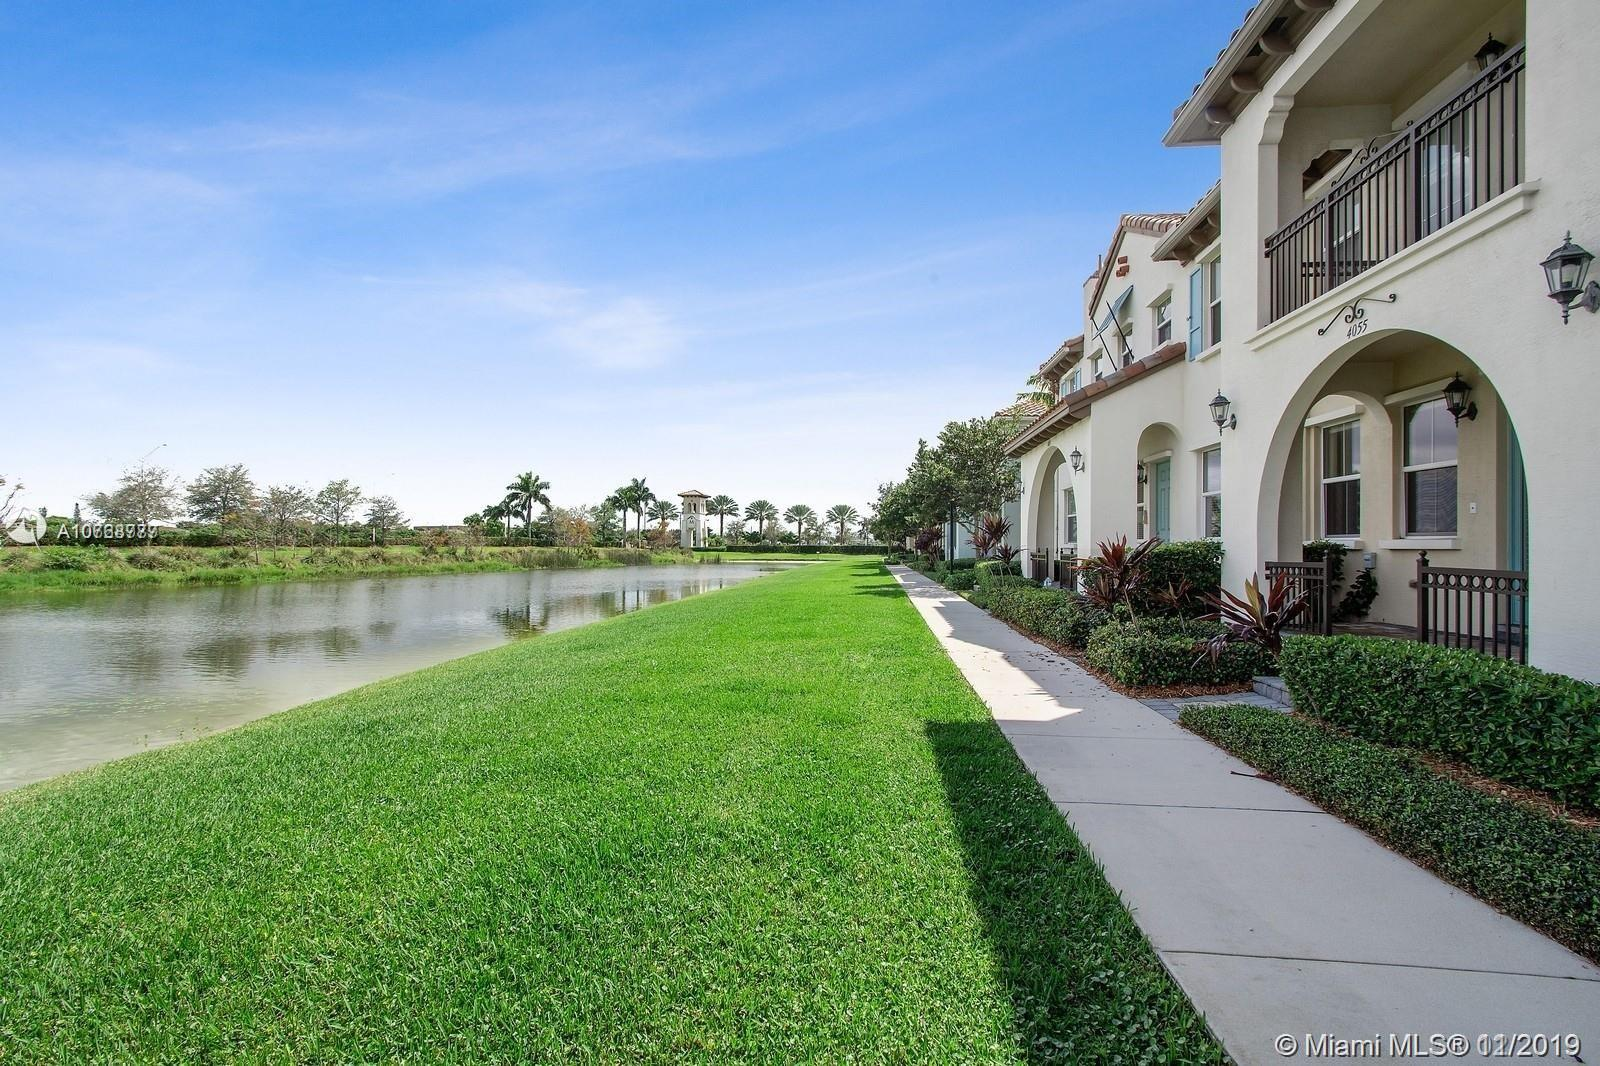 CENTRALLY LOCATED IN THE HEART OF COOPER CITY, FL IS THIS UNIQUE WATERFRONT TOWNHOME! NESTLED AWAY IN THE MOST SOUGHT AFTER GATED COMMUNITY, CASCADA AT MONTERRA. THIS RARE MODEL OFFERS 2 MASTER SUITES, 2.5 BATHS, HURRICANE IMPACT WINDOWS AND A TWO CAR GARAGE. ENJOY  FULL RESORT STYLE AMENITIES INCLUDING FITNESS CENTER, TENNIS AND BASKETBALL COURTS AND OF COURSE THE BEST SCHOOLS IN BROWARD COUNTY